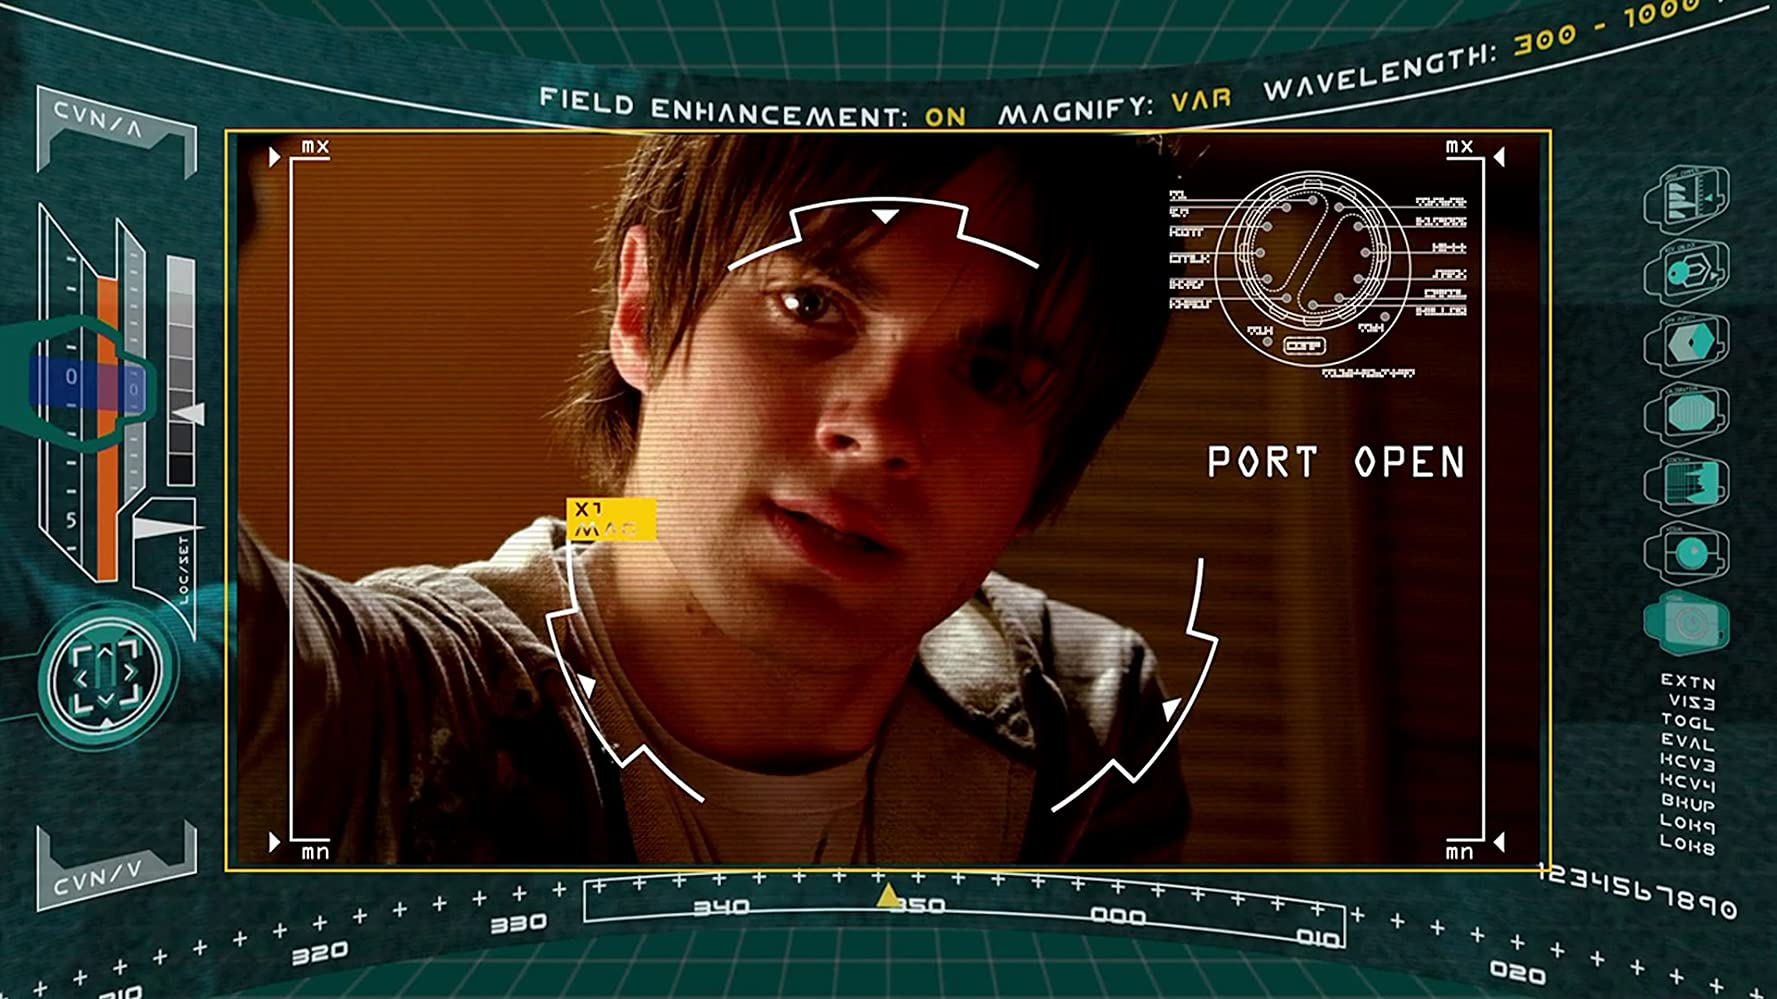 Thomas Dekker in Terminator: The Sarah Connor Chronicles (2008)